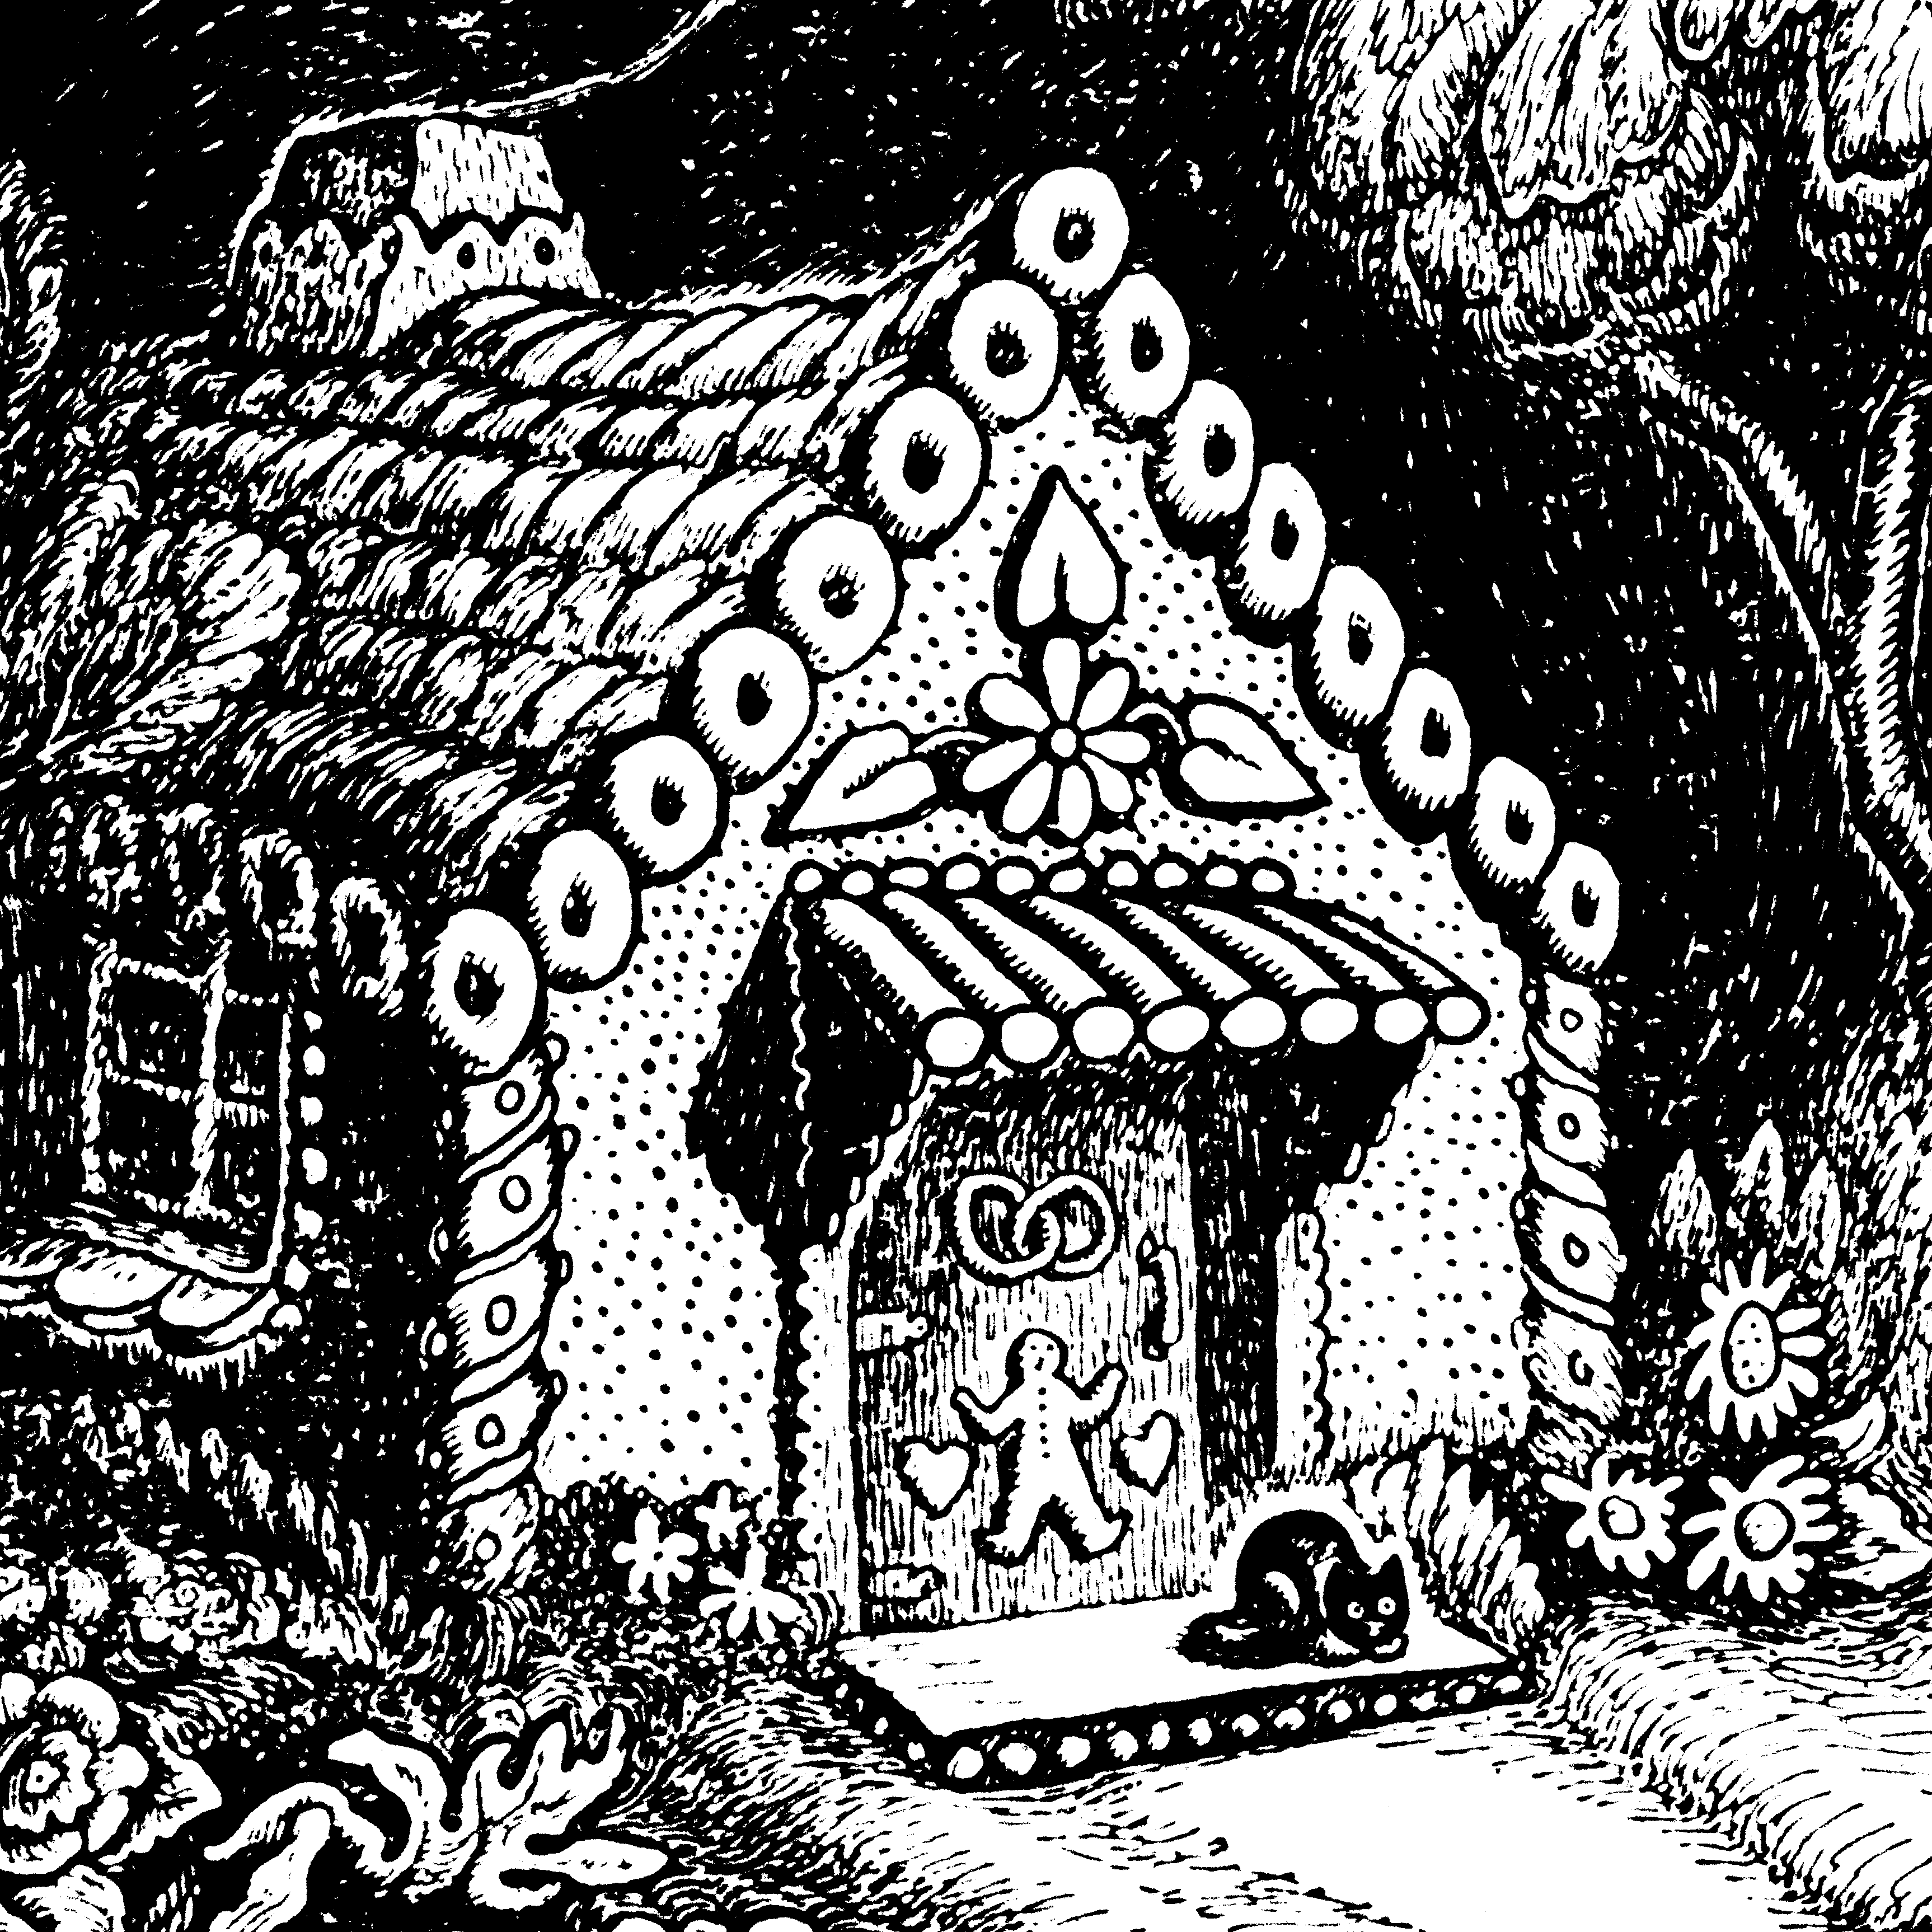 Brother and sister make their fateful first sighting of the witch's house made of gingerbread in Hansel and Gretel.